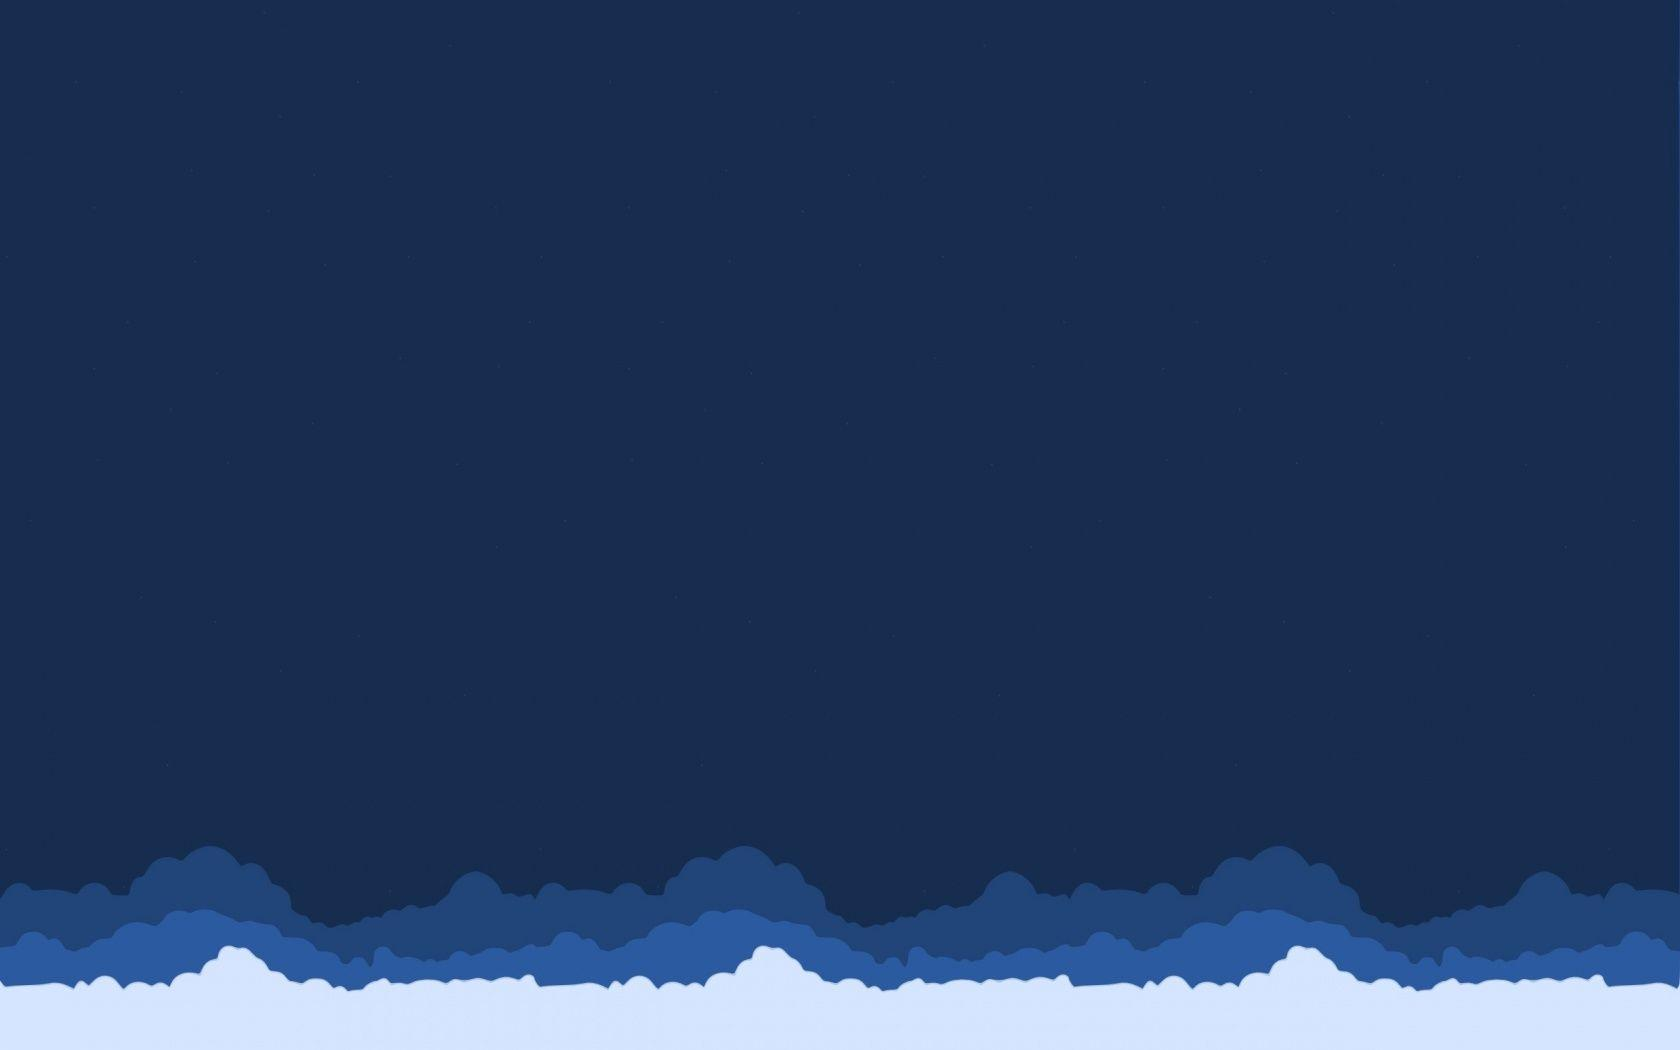 Navy Blue Aesthetic Tumblr Wallpapers Wallpaper Cave